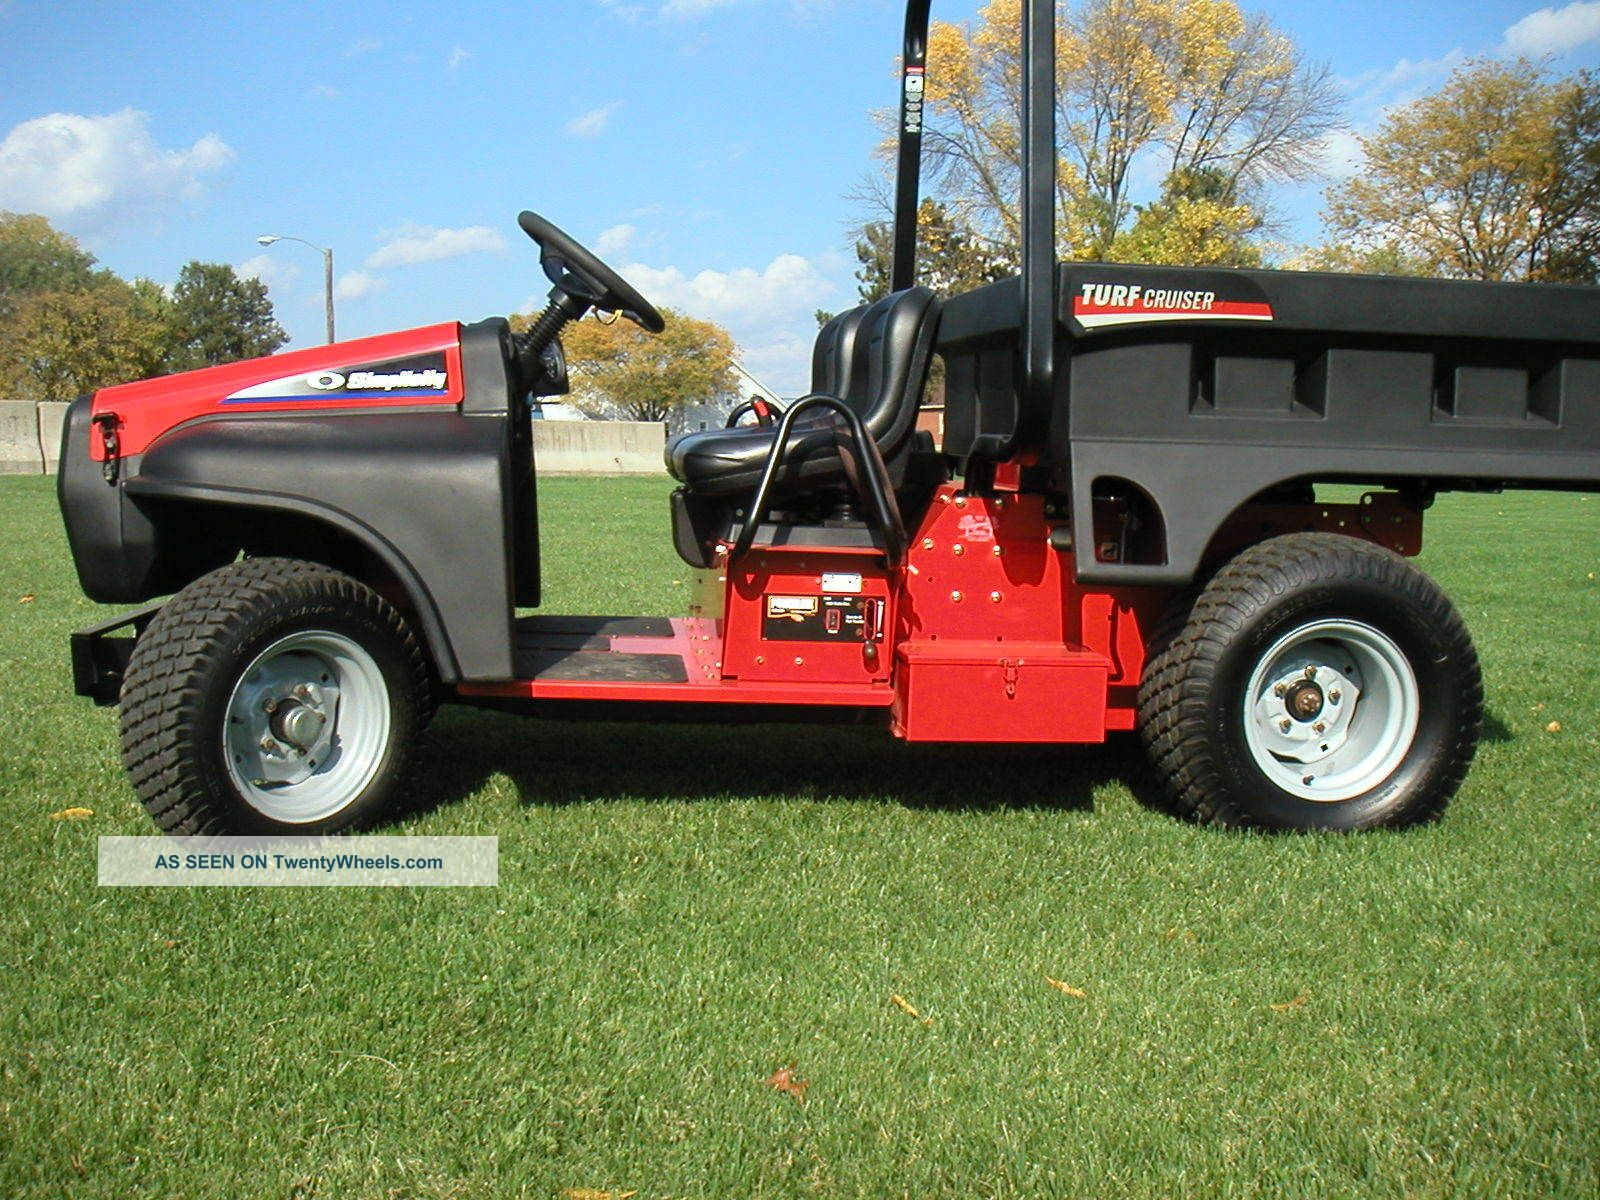 Snapper / Simplicity Turf Cruiser Utility Vehicle Utility Vehicles photo